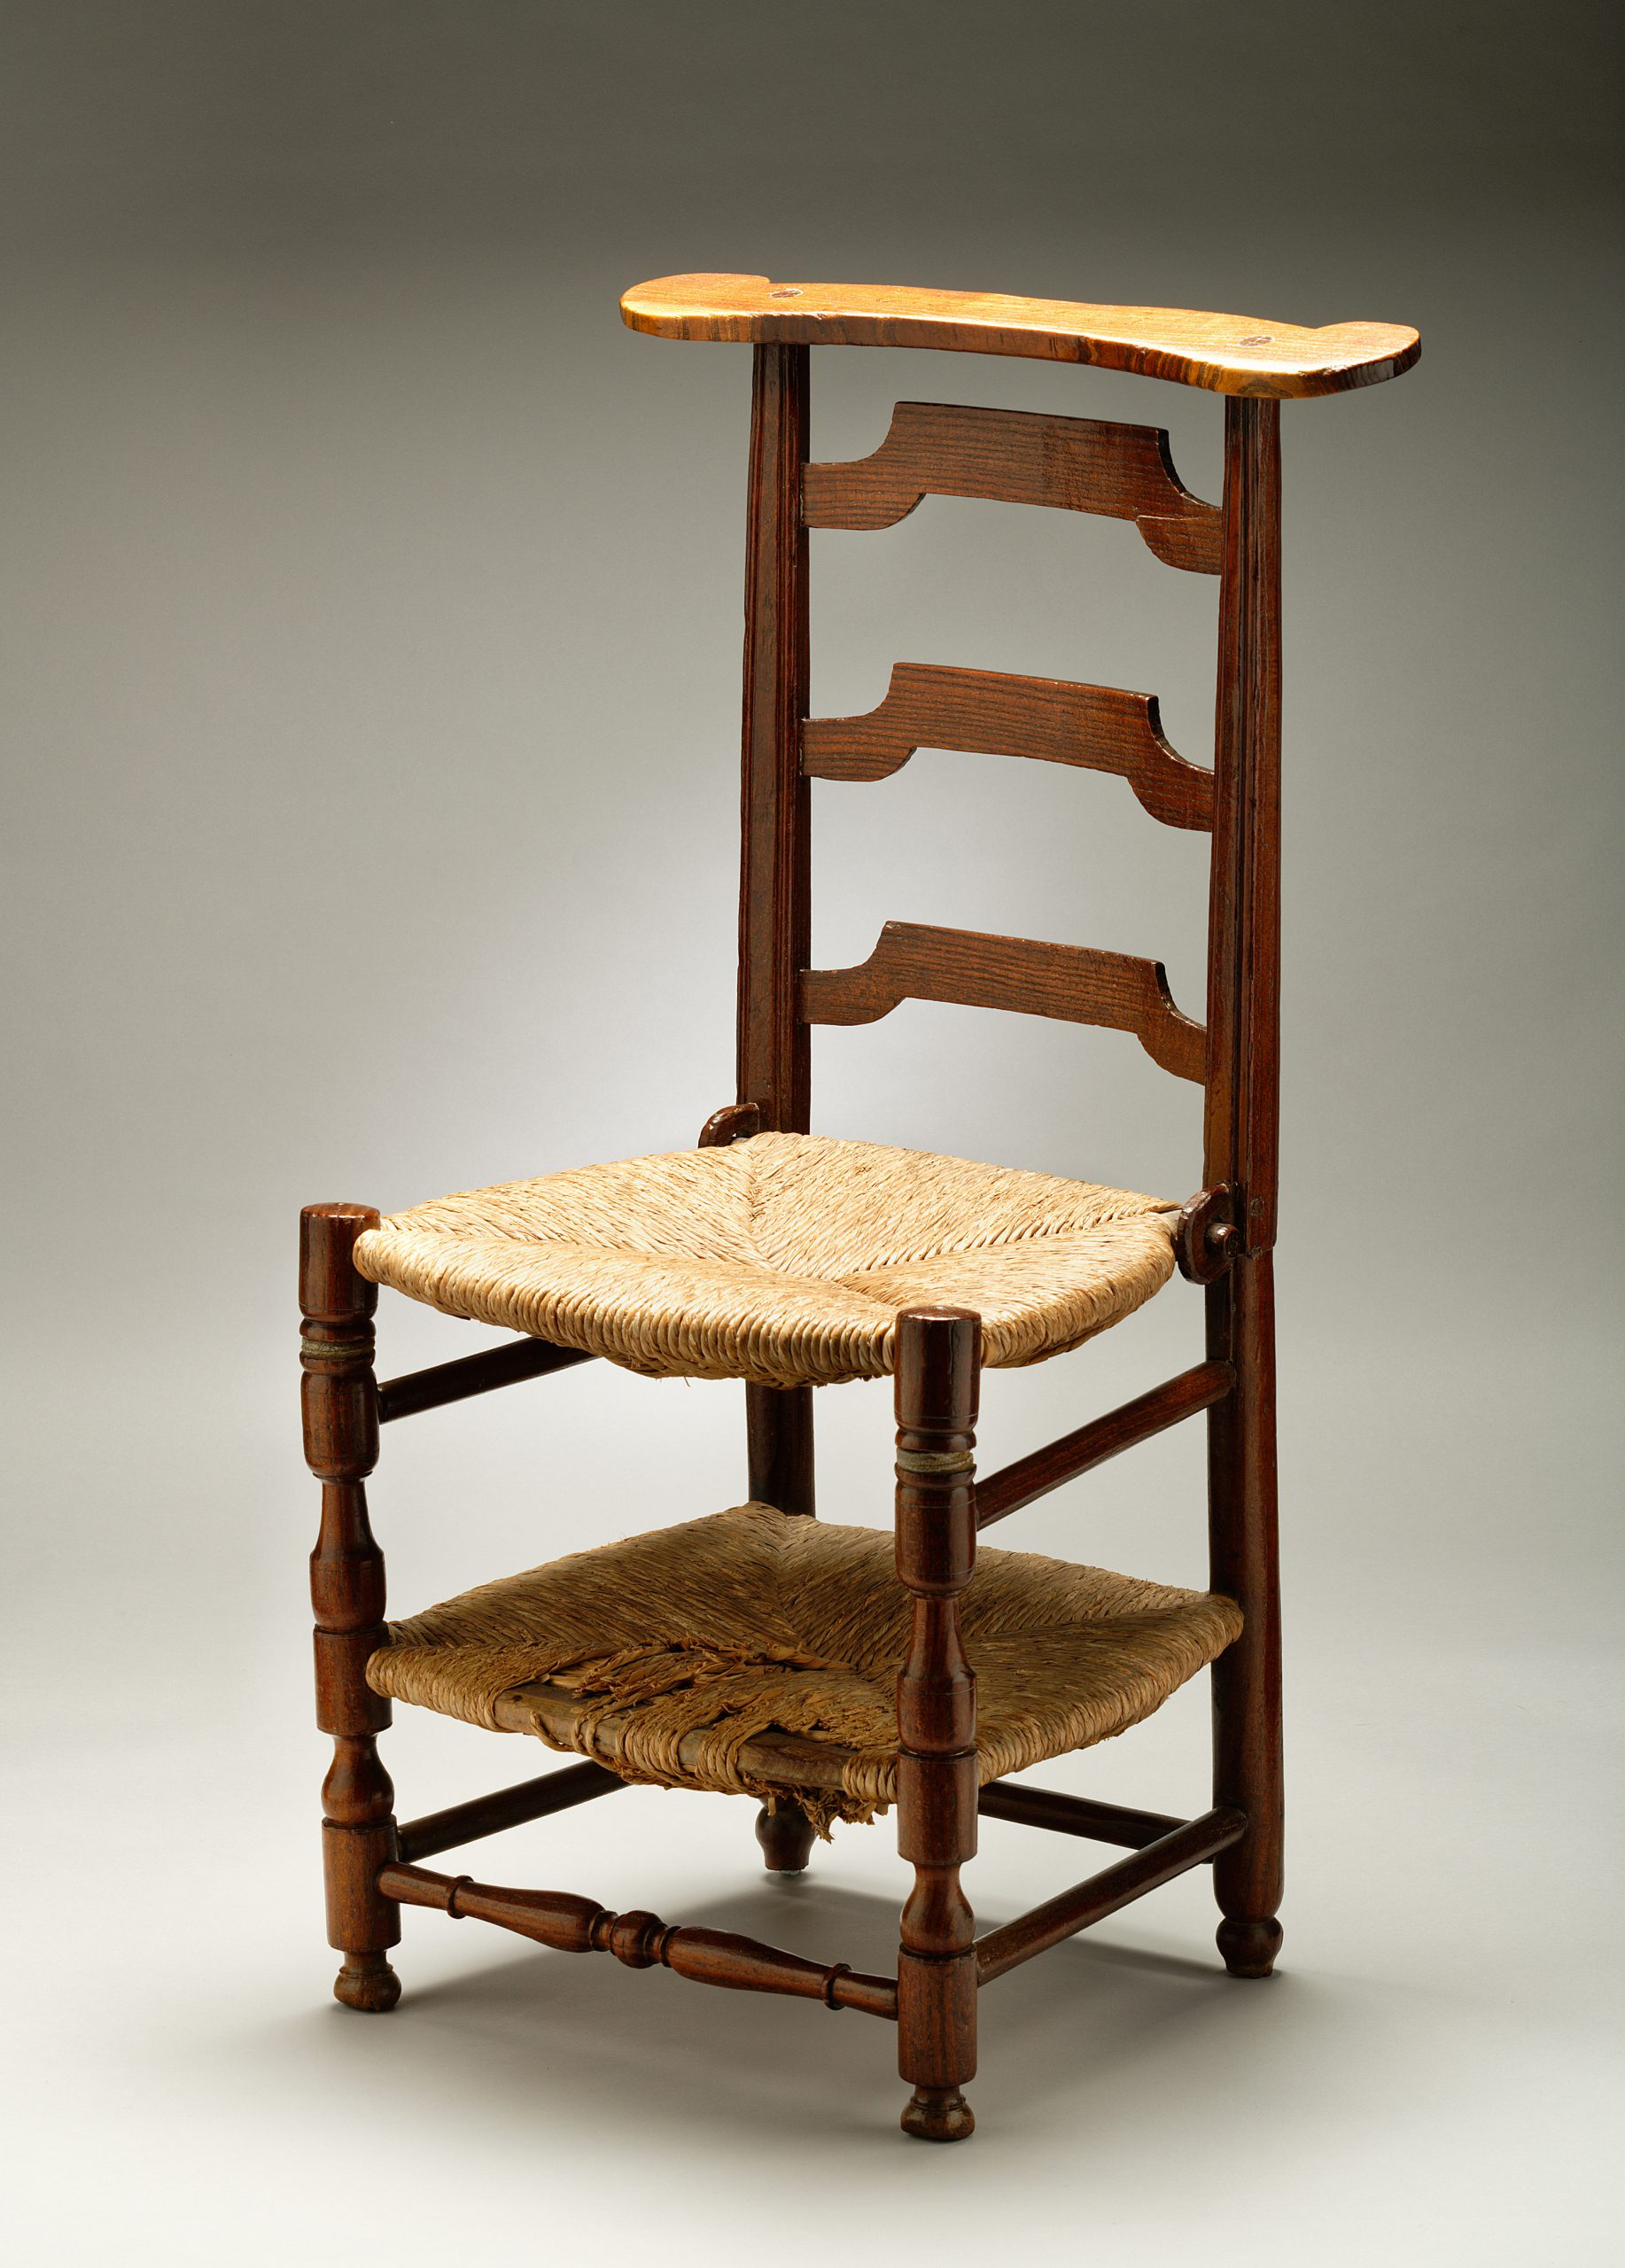 Image of A Red Mulberry Prie-Dieu Child's Chair